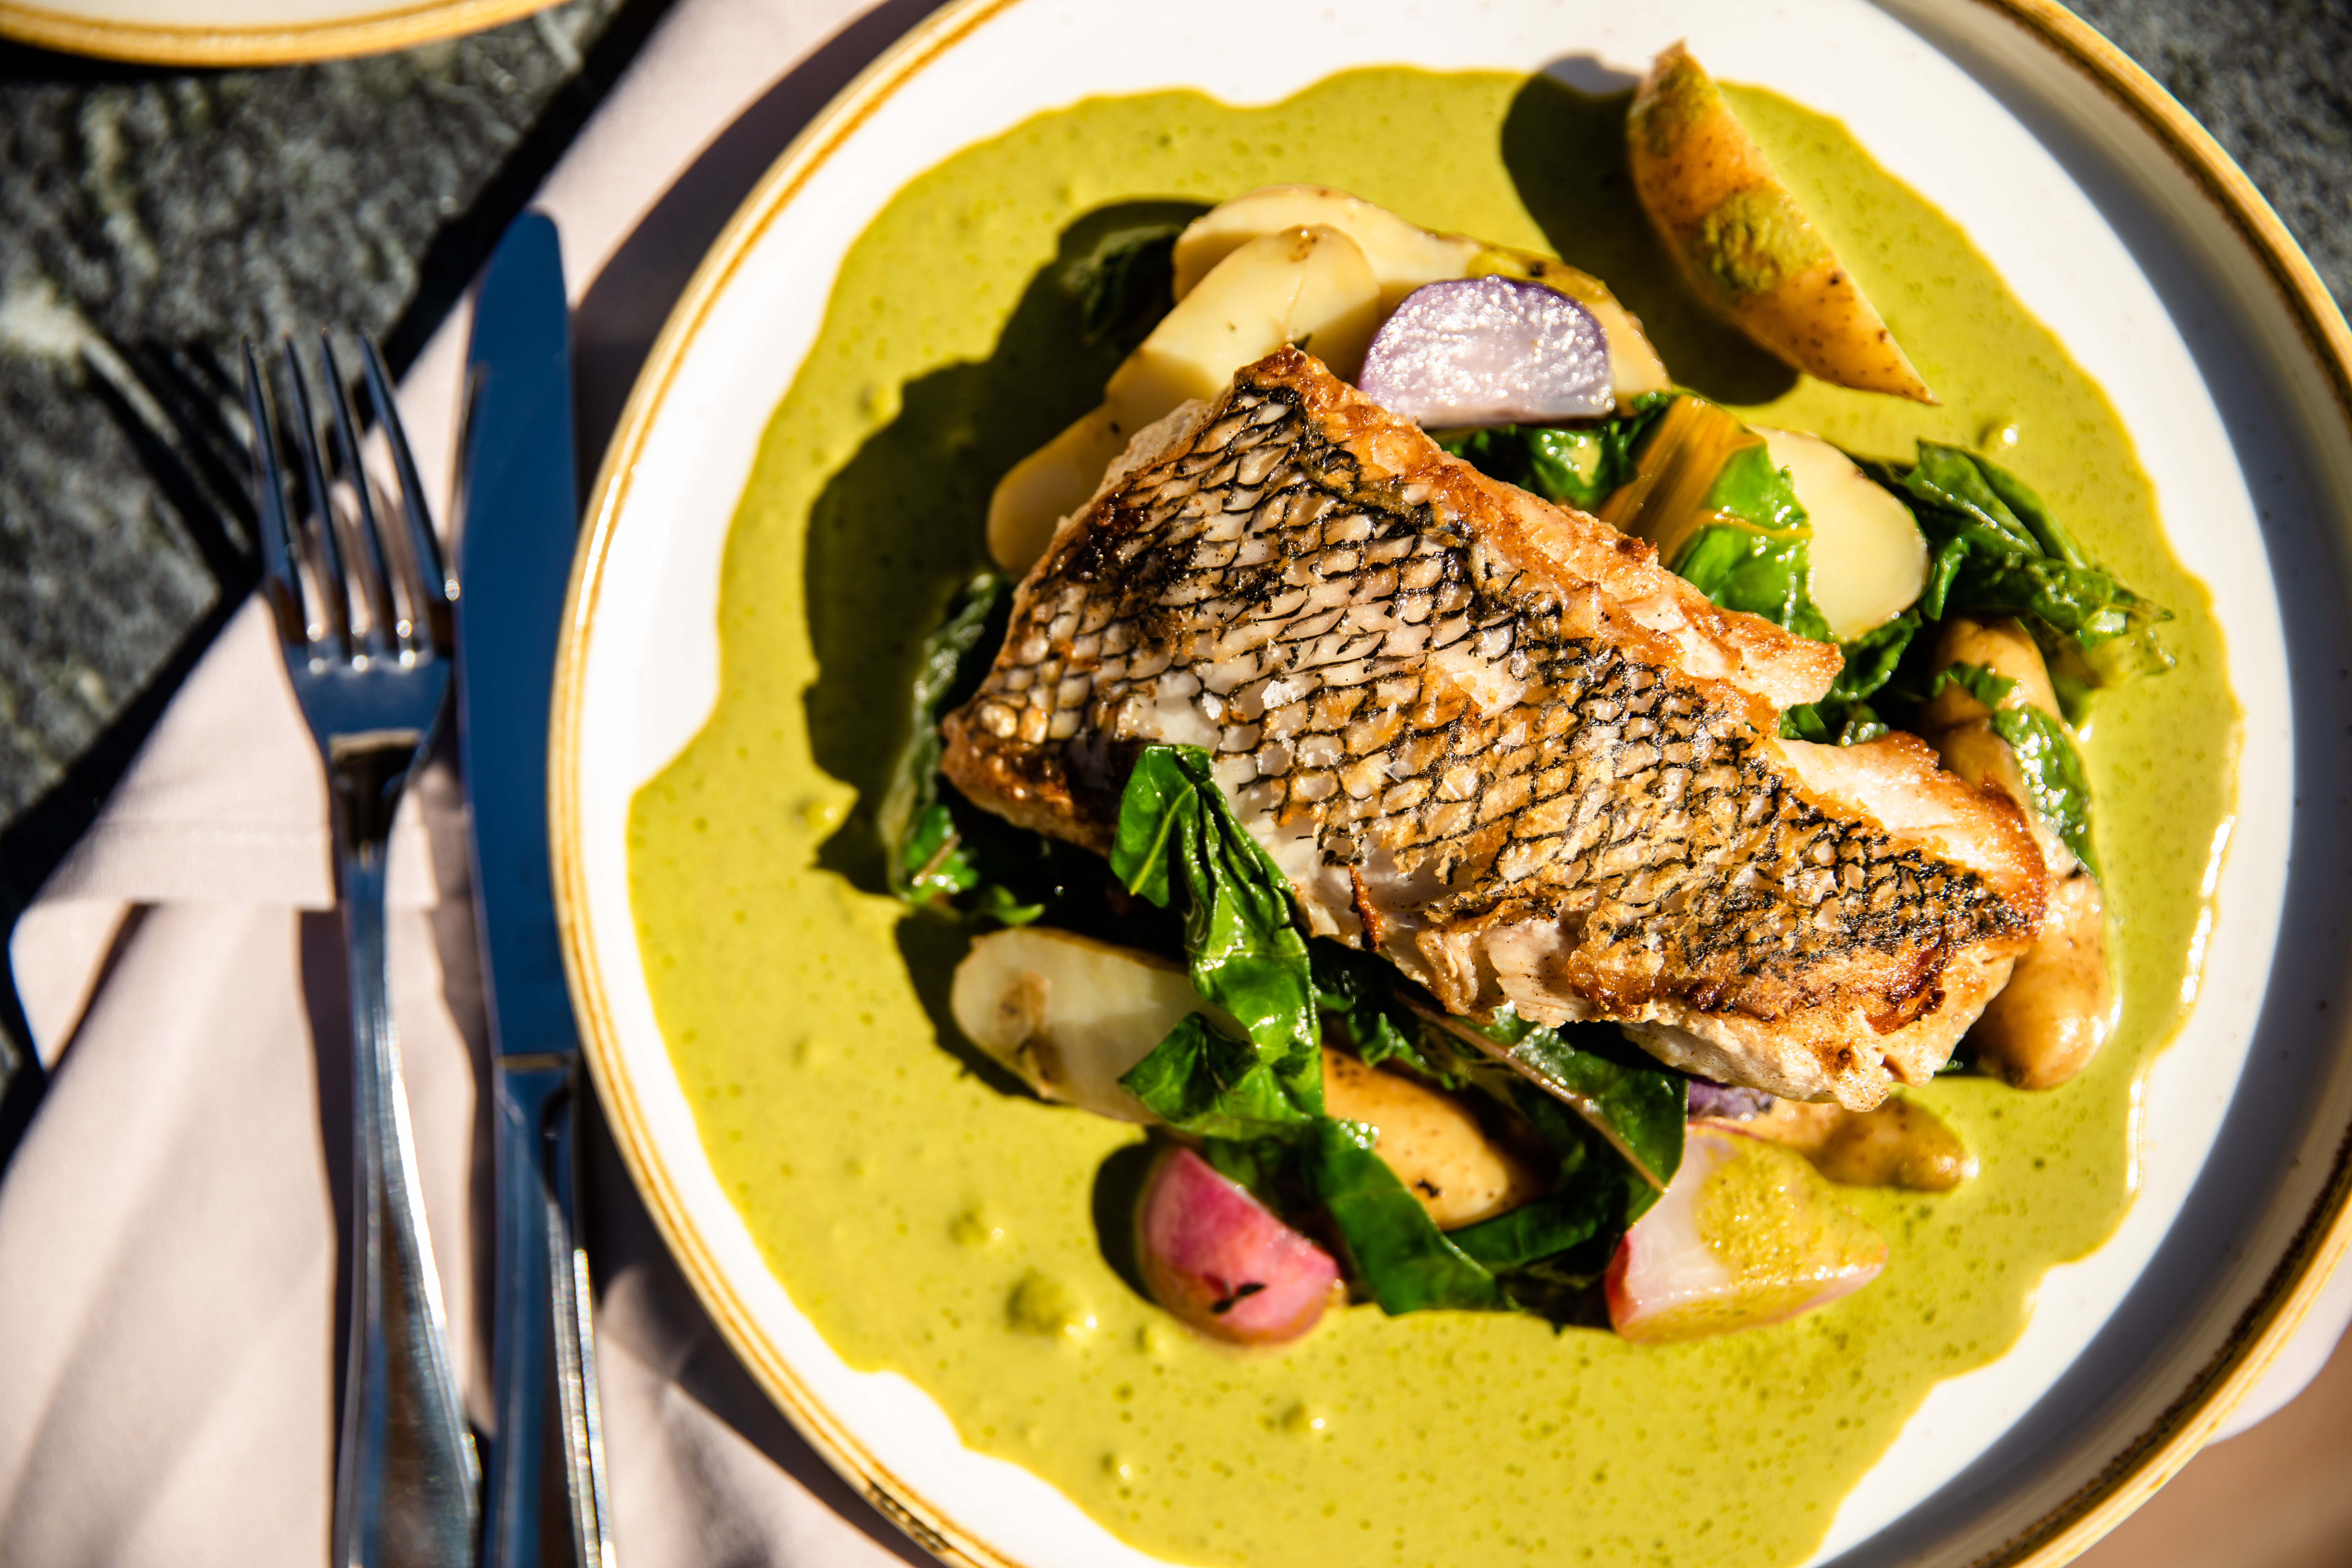 Seared black bass with rainbow chard, potatoes, radishes, green garlic-parsley jus that's bright yellow and shown from above.